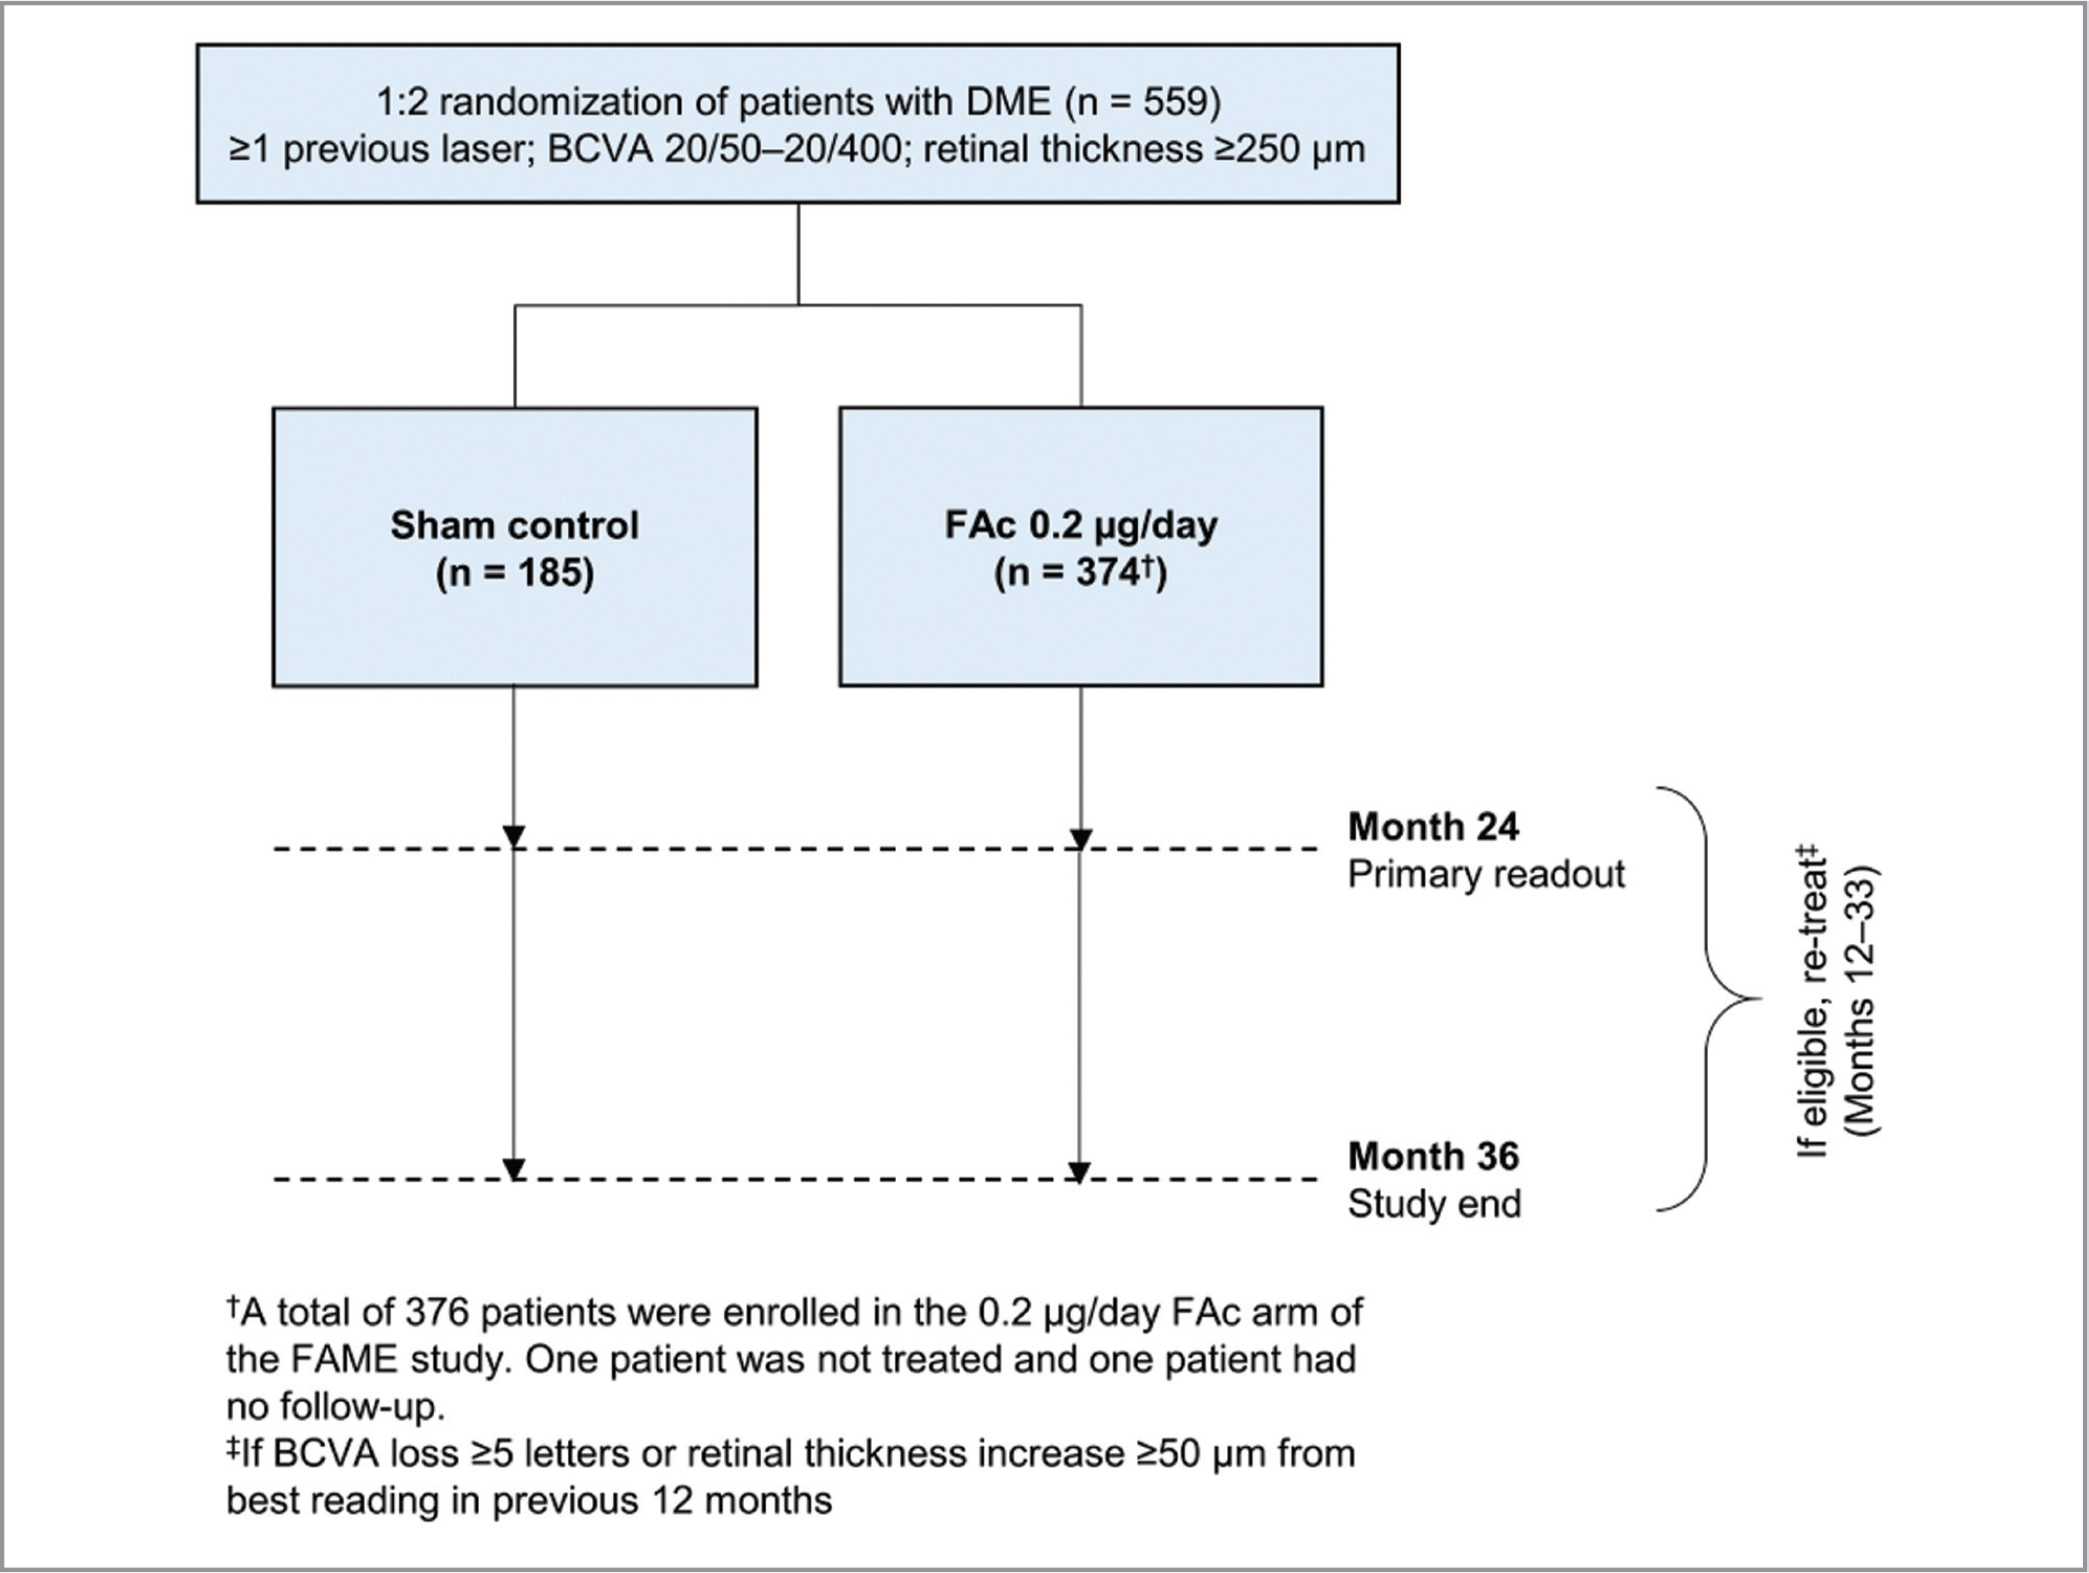 Integrated FAME trials study design, forming the FAME study.14 BCVA = best-corrected visual acuity; DME = diabetic macular edema; FAc = fluocinolone acetonide